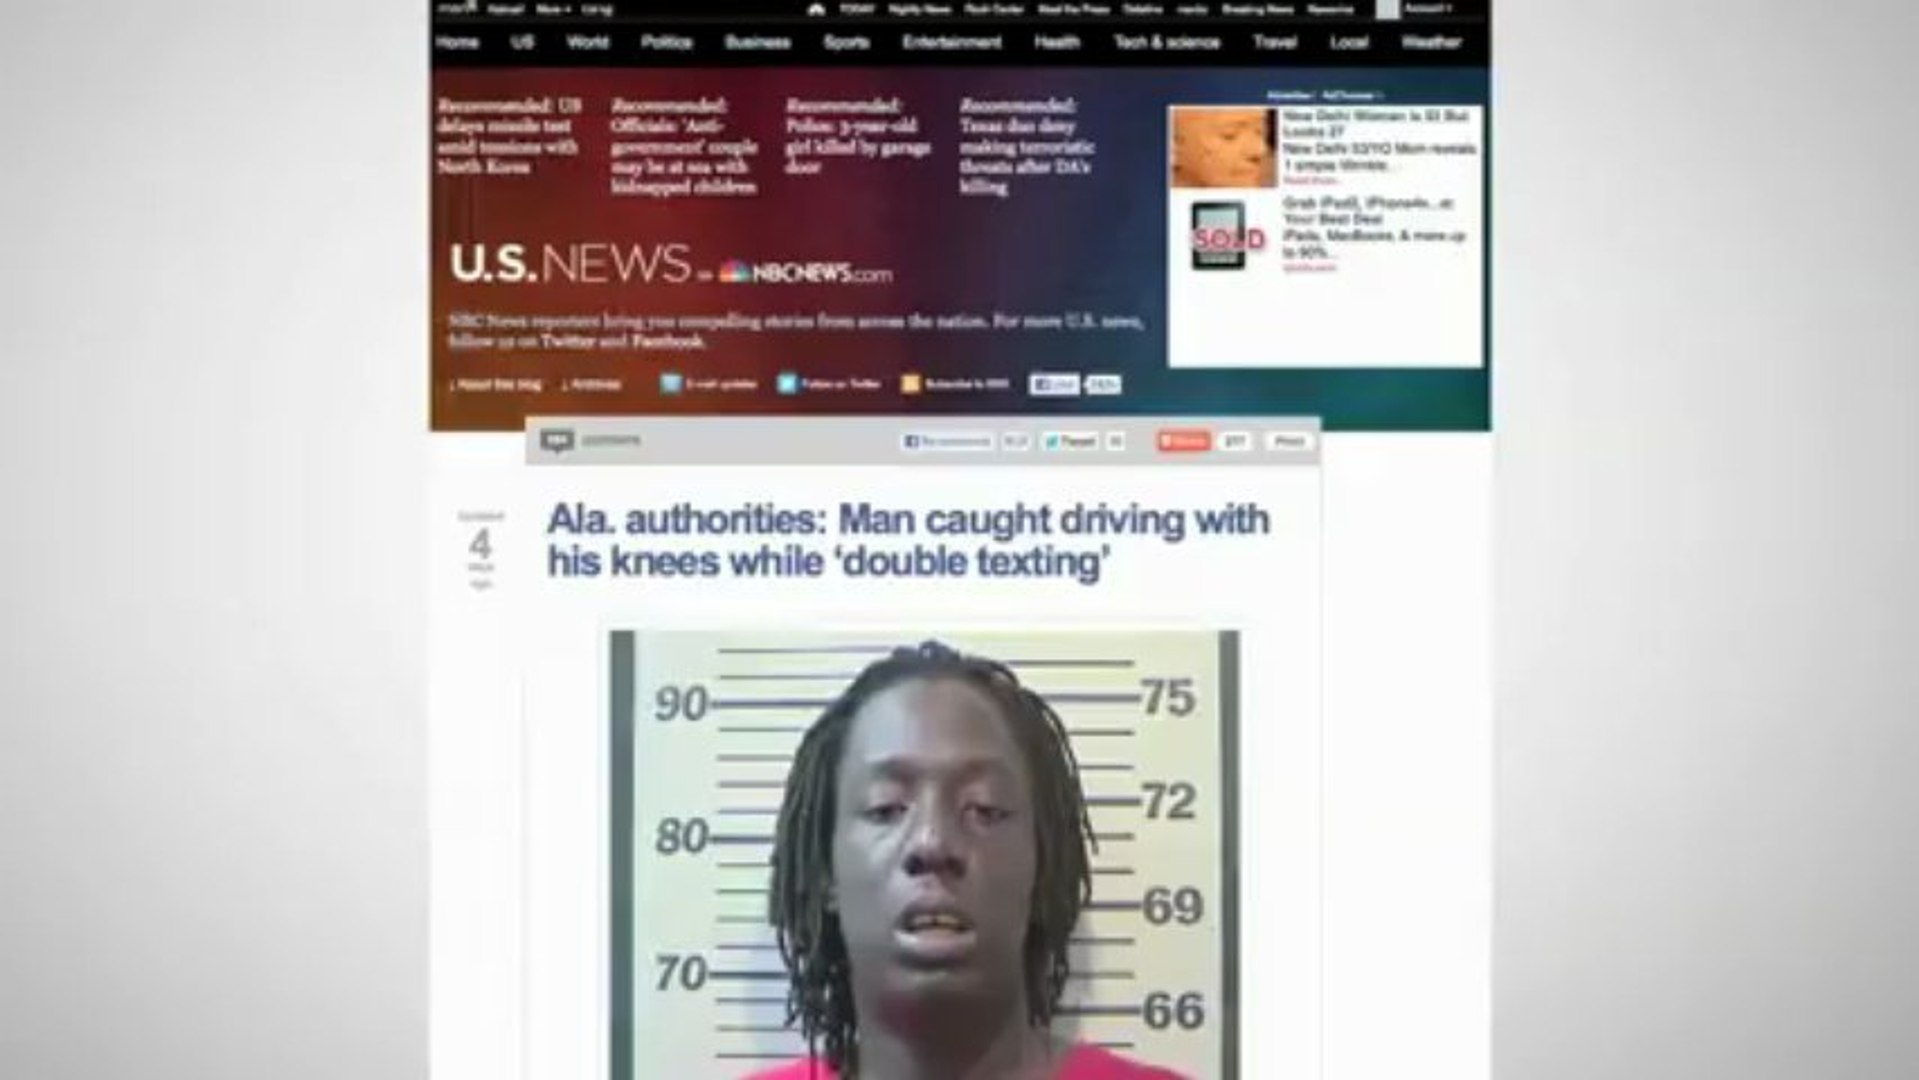 Man Caught Double Texting